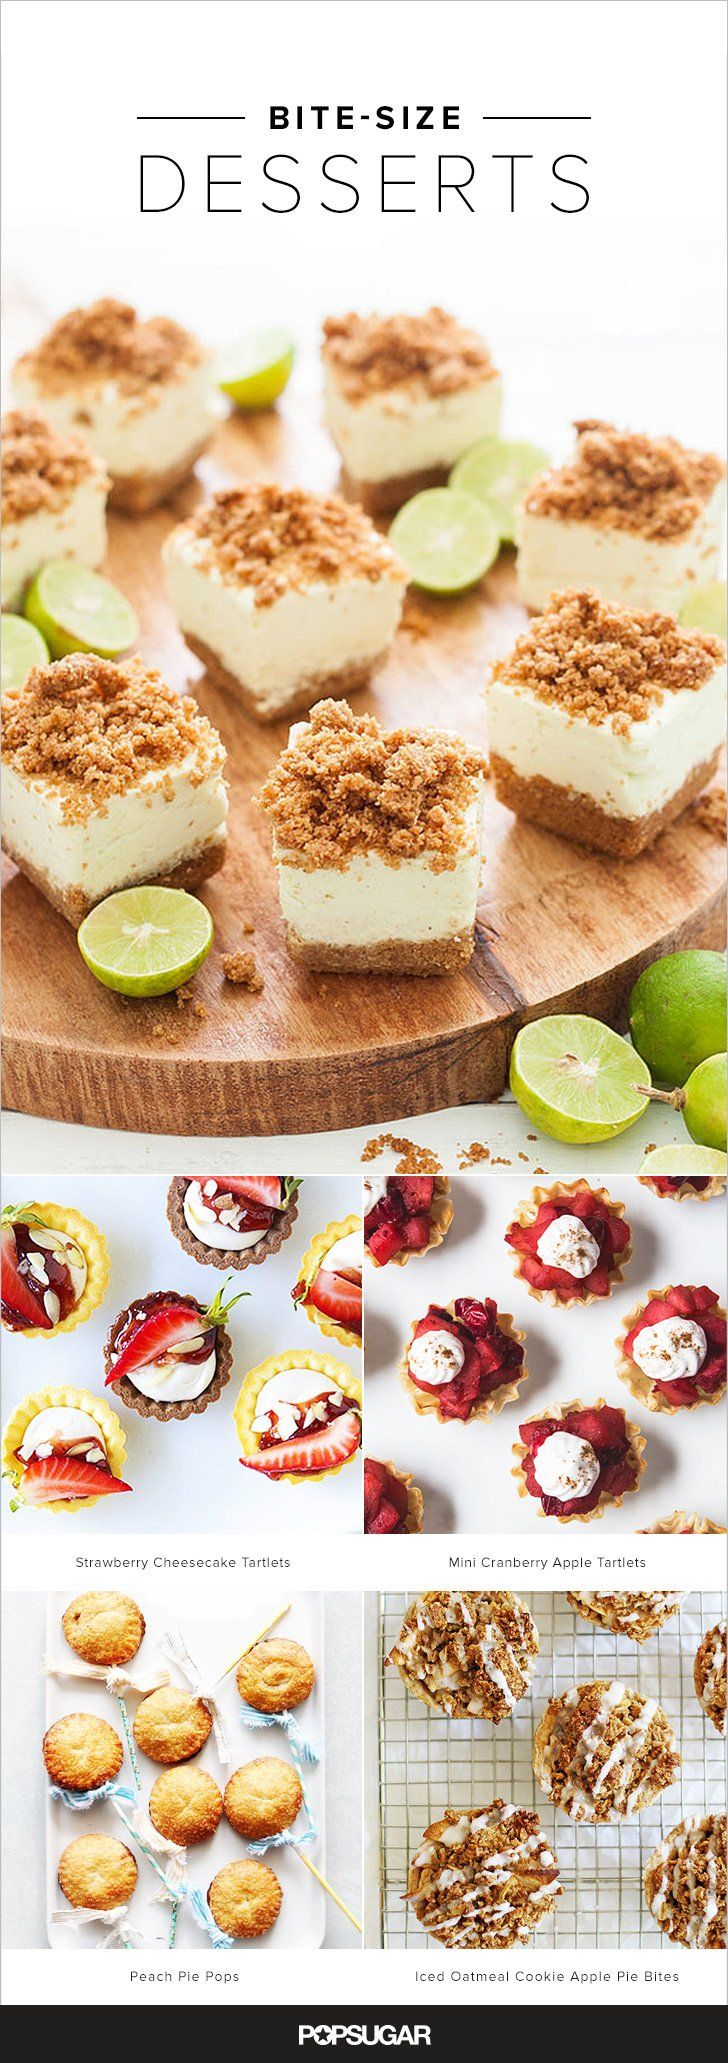 28 Bite-Size, Party-Ready Dessert Recipes